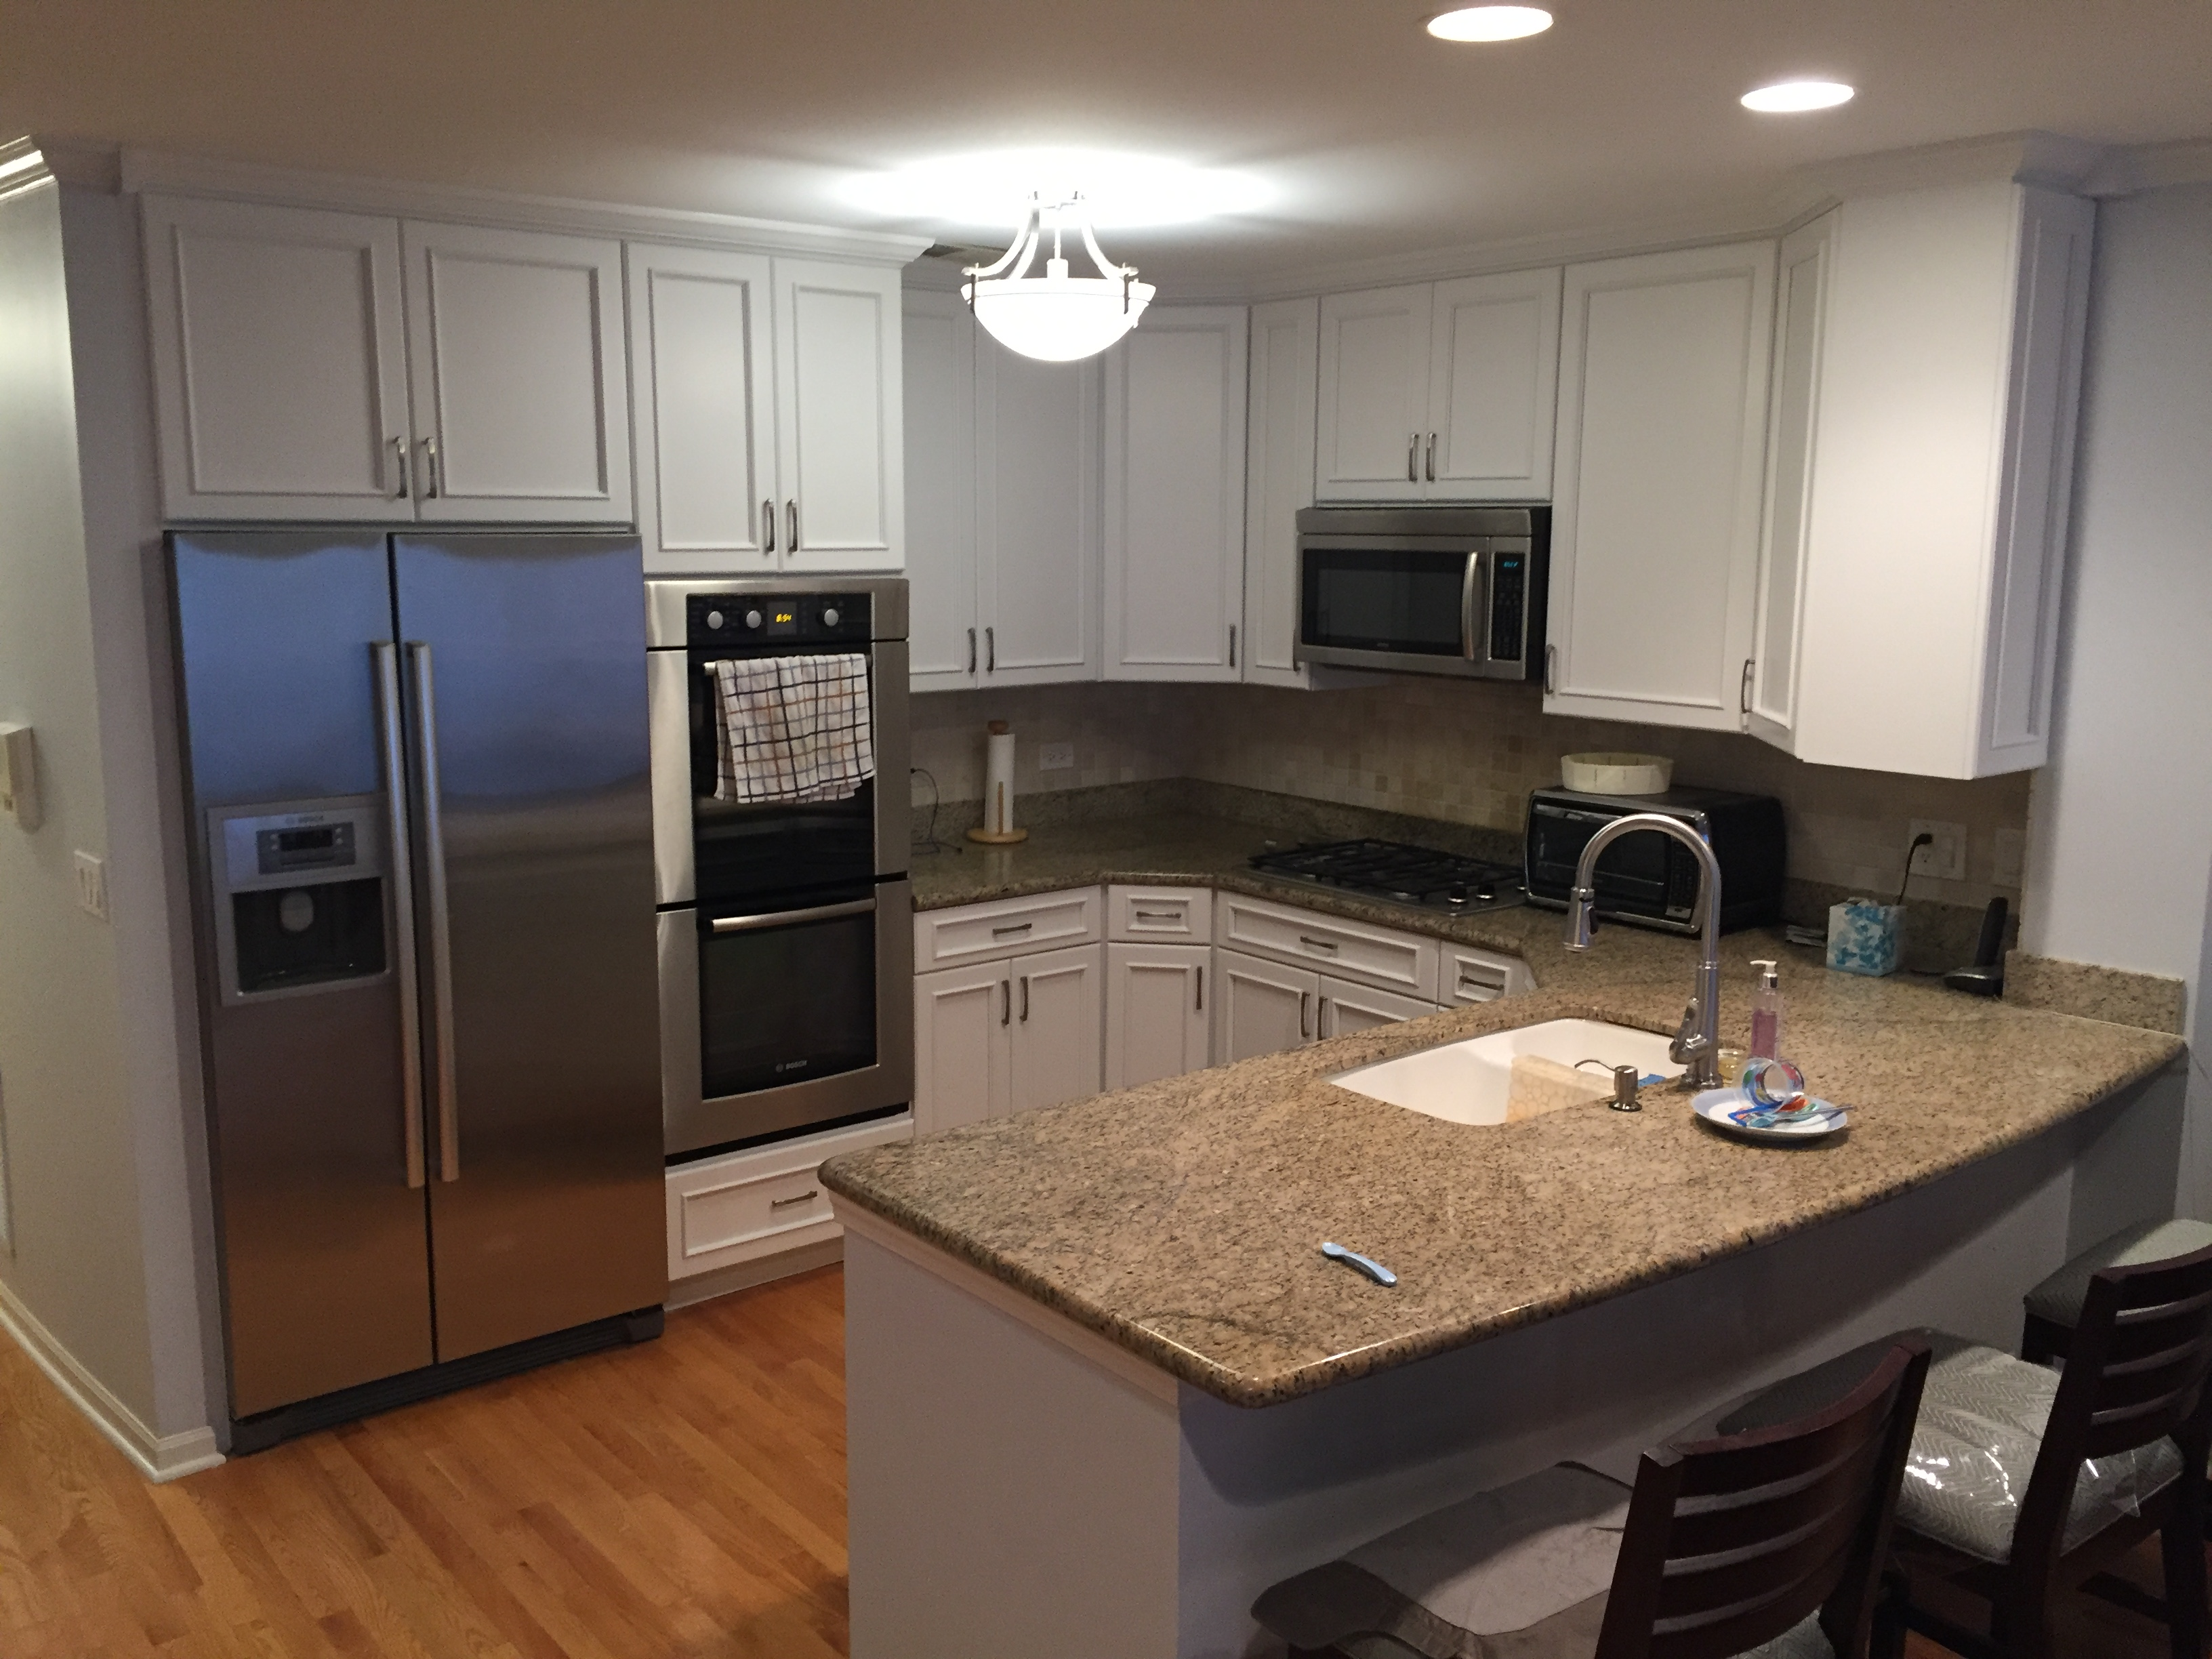 Kitchen Cabinets Refinishing – Chicago (Lincoln Park) | giantpainters